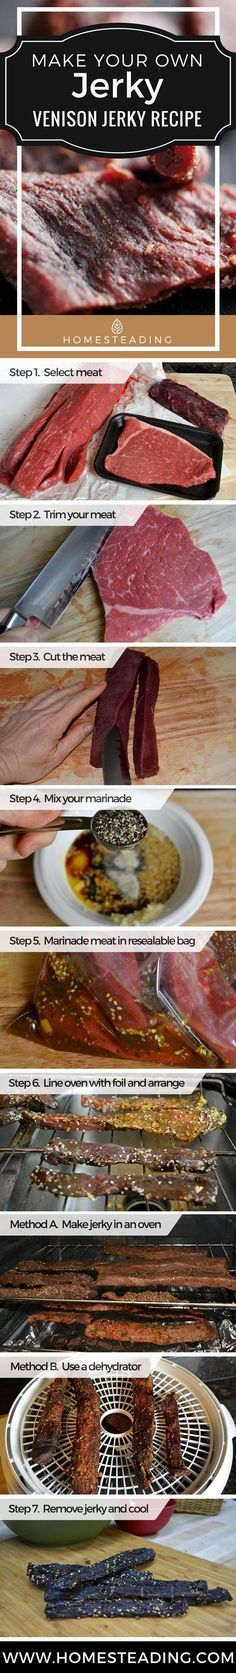 Step by Step Venison Jerky Recipe | Homesteading Recipe